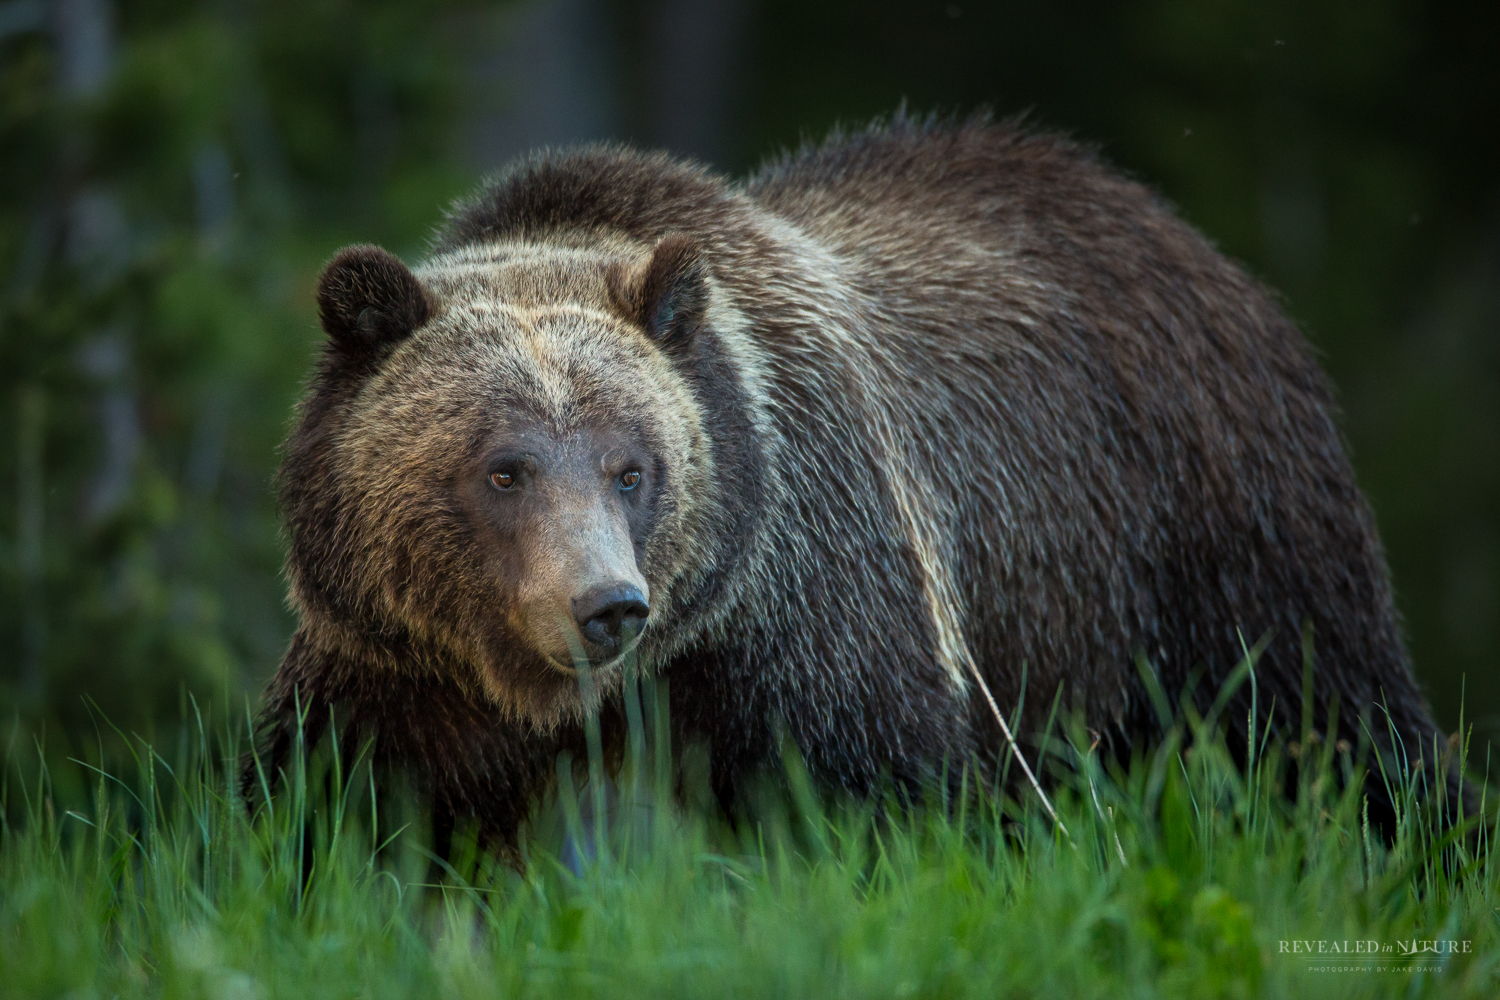 Photograph Grizzly in Yellowstone